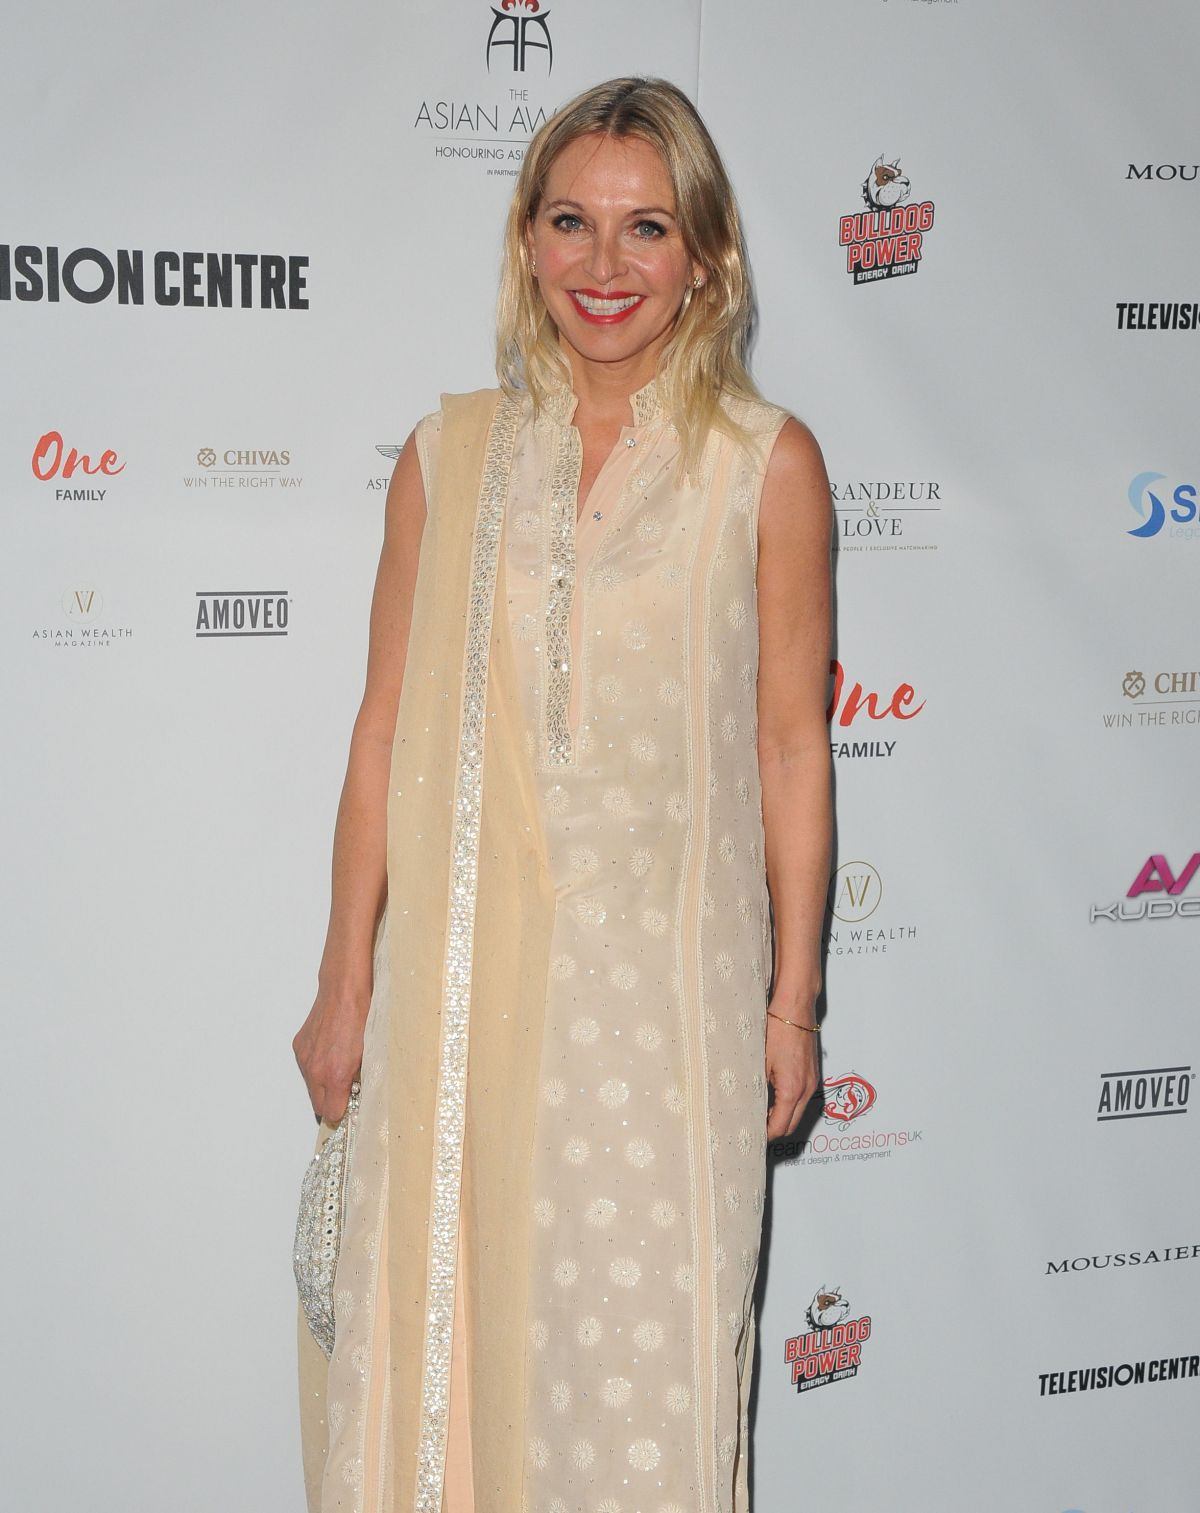 NIKKI BEDI at 7th Annual Asian Awards in London 05/05/2017